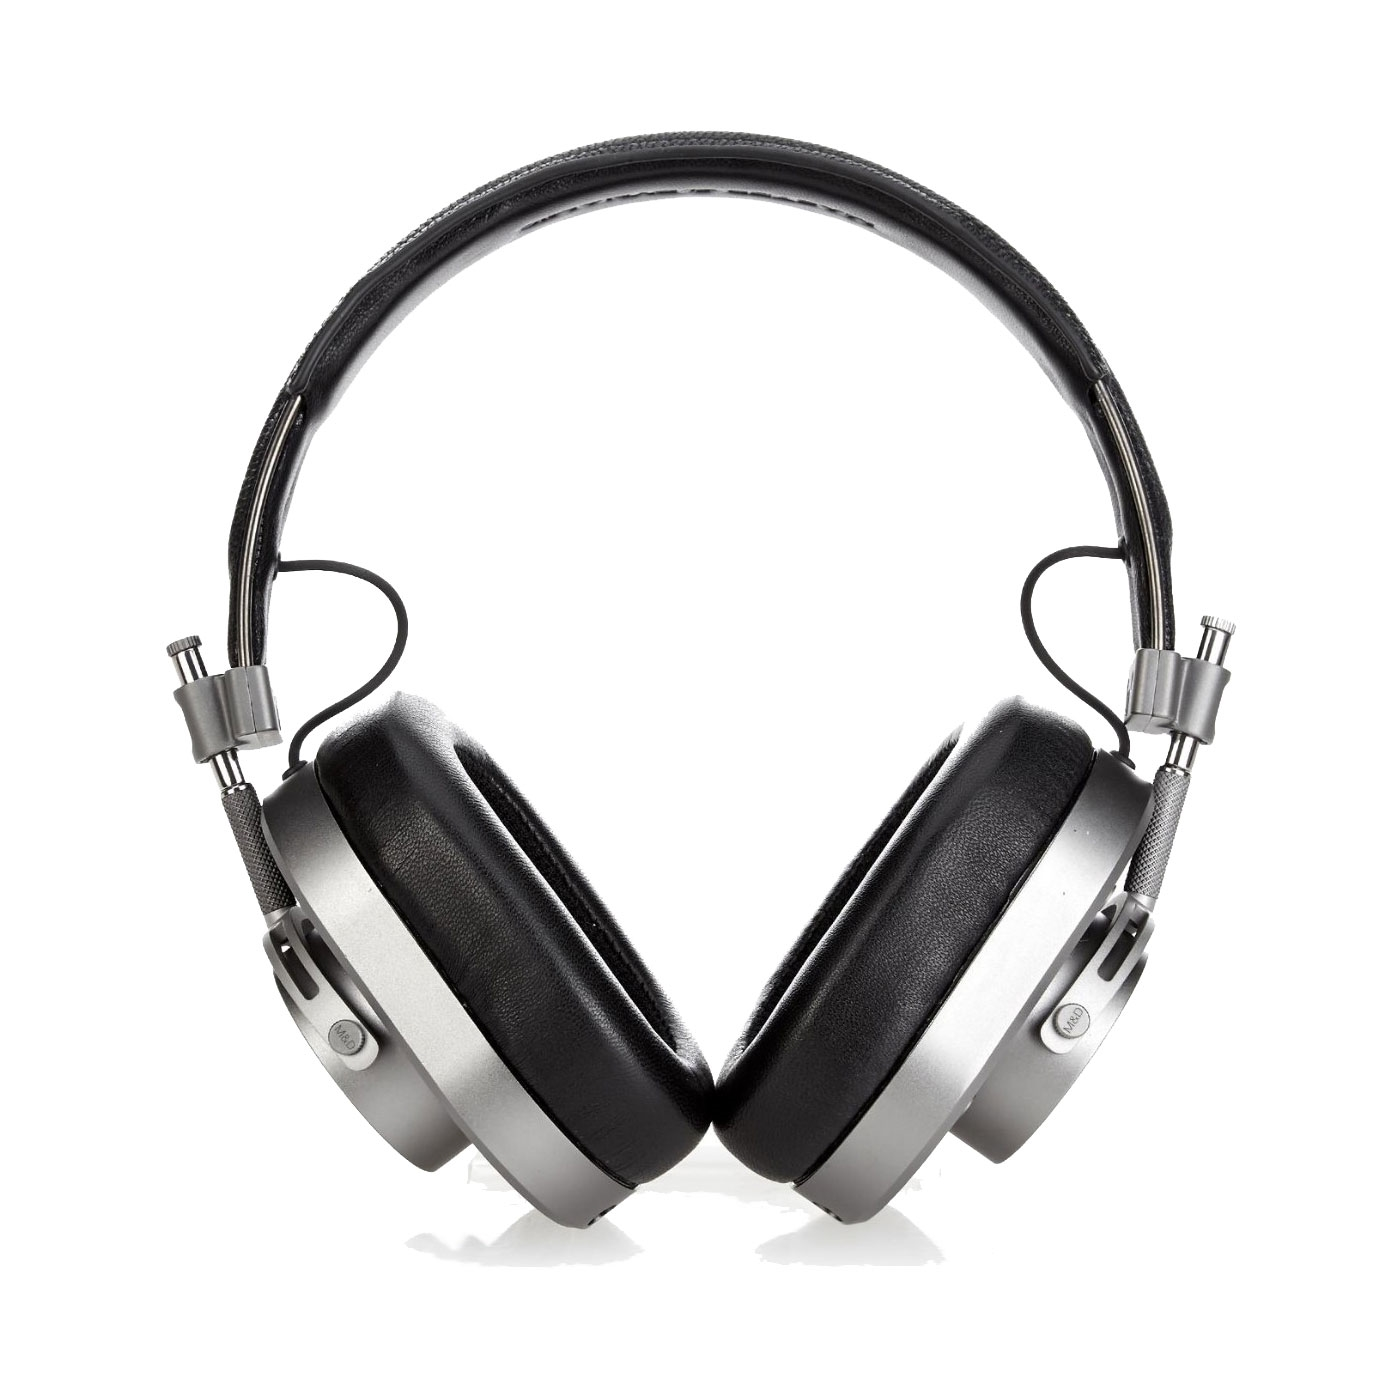 MSTR & DYNAMIC • Headphones • 400 USD